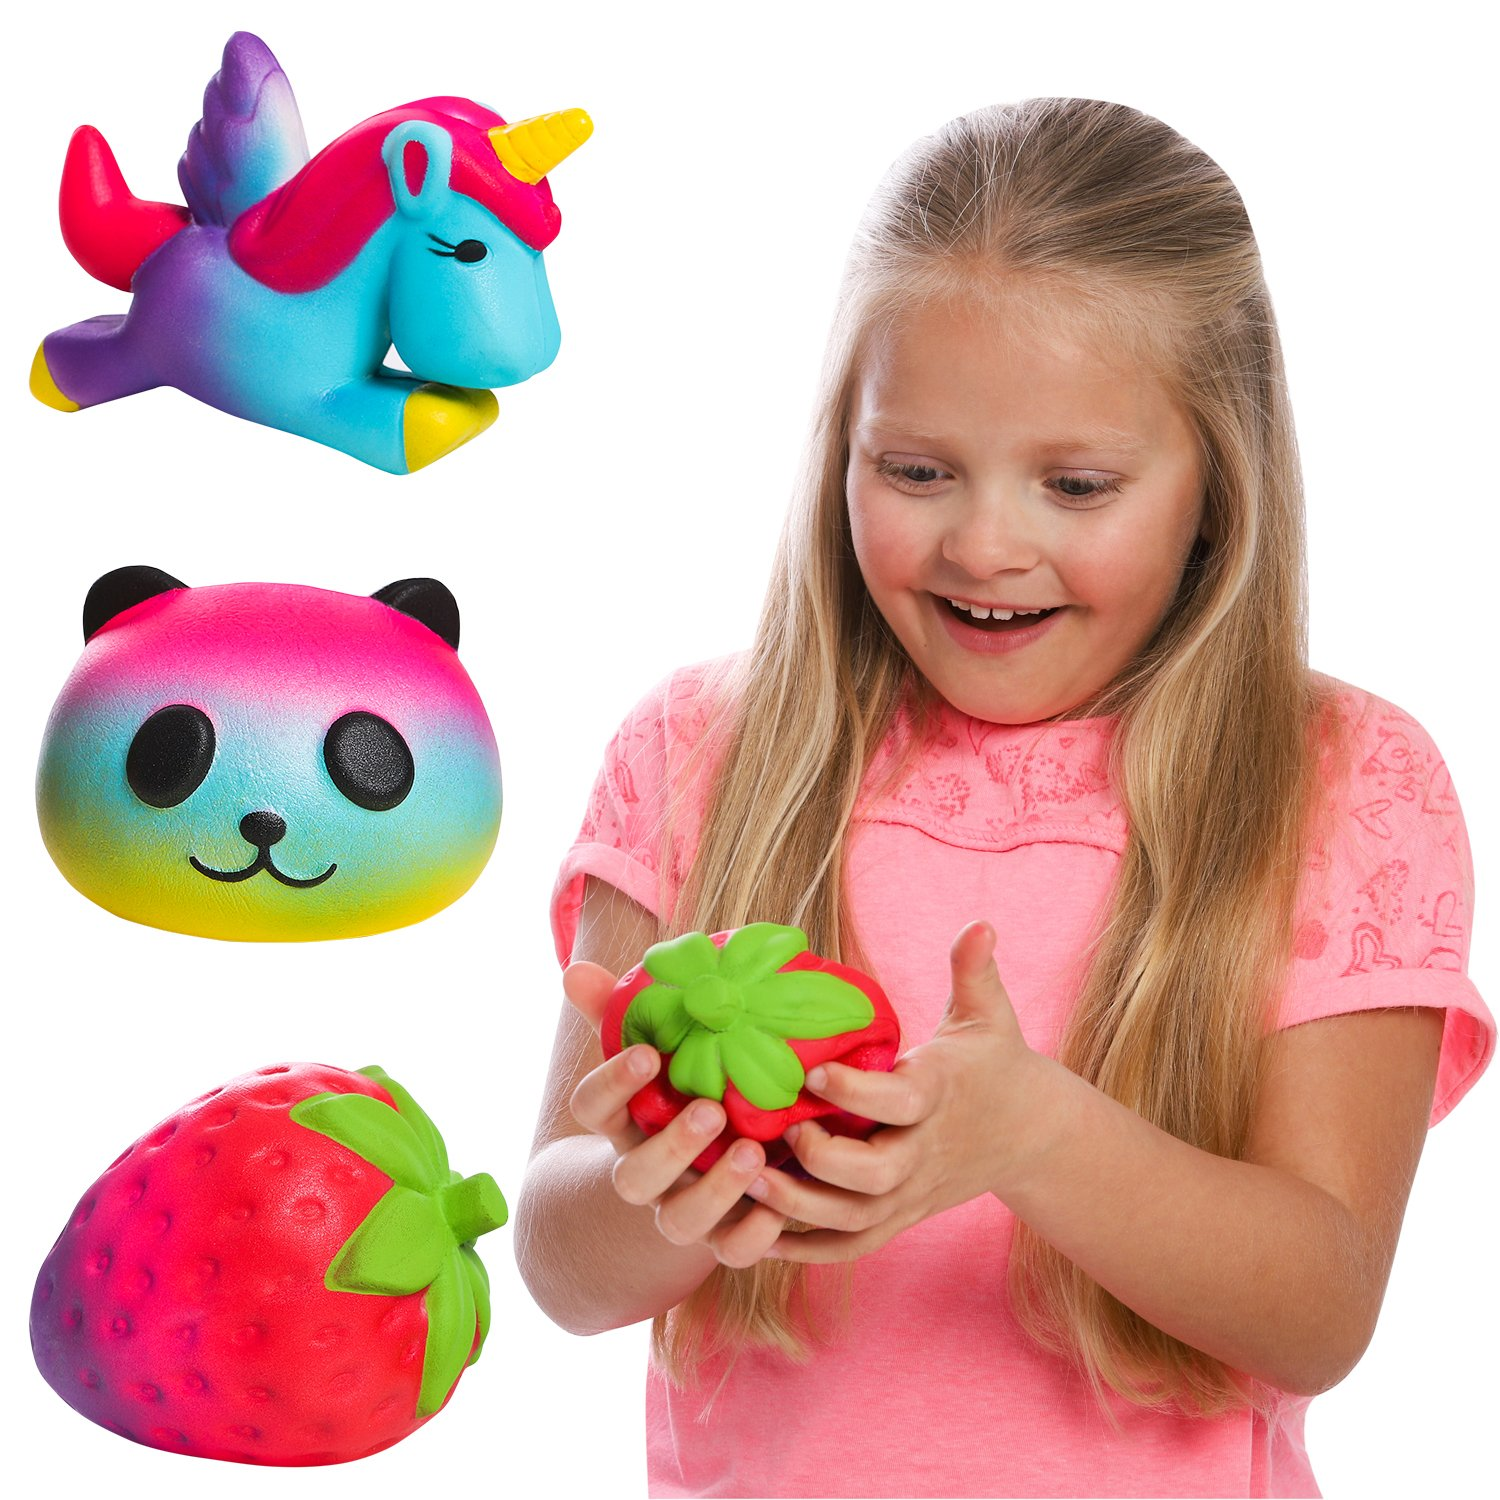 GirlZone Gifts for Girls: Set of 3 Slow Rising Squishies, Unique Colors, Stress Reducing, Scented Squishy, Birthday Present Gift for Girls Age 4 5 6 7 8 9+ by GirlZone (Image #1)